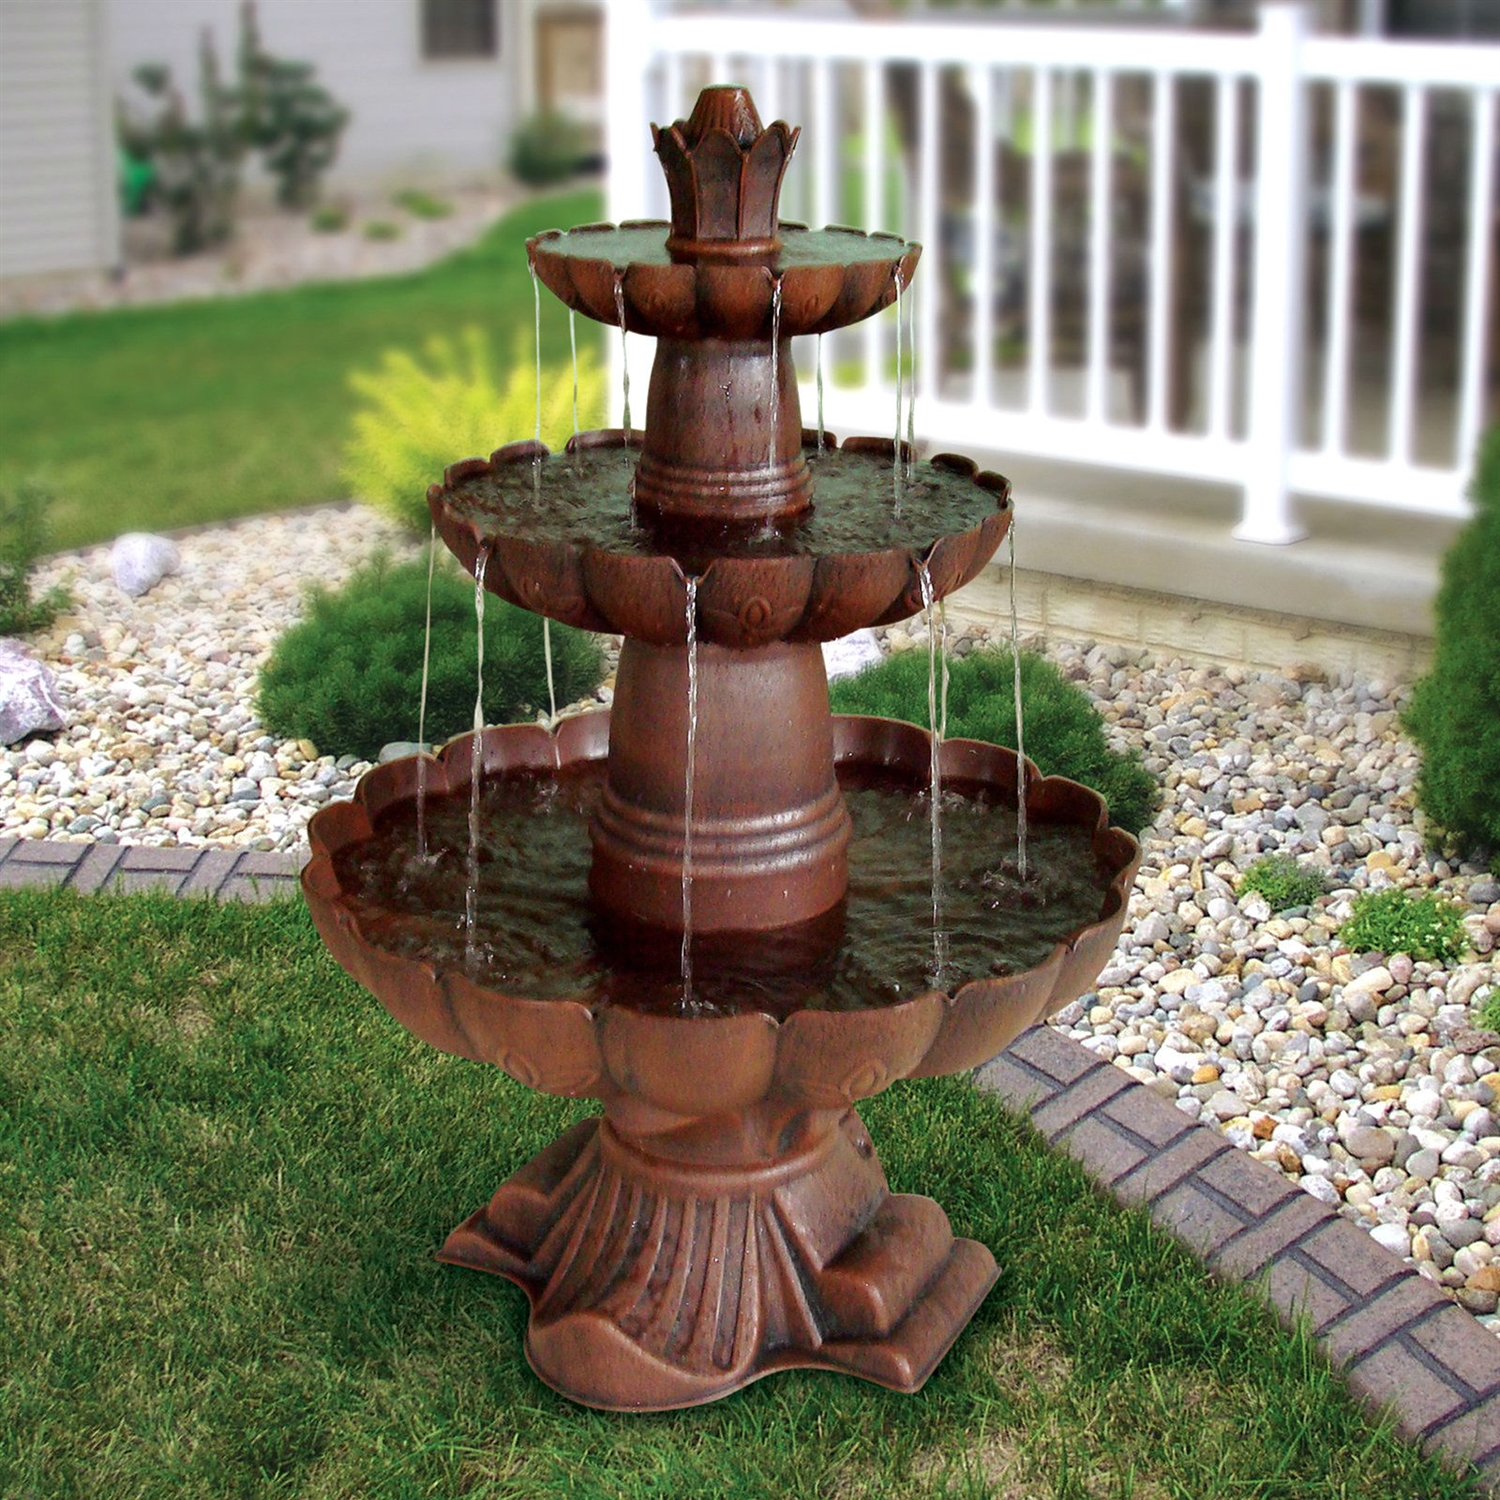 3 Tier Outdoor Garden Fountain in Durable Poly Vinyl Composite